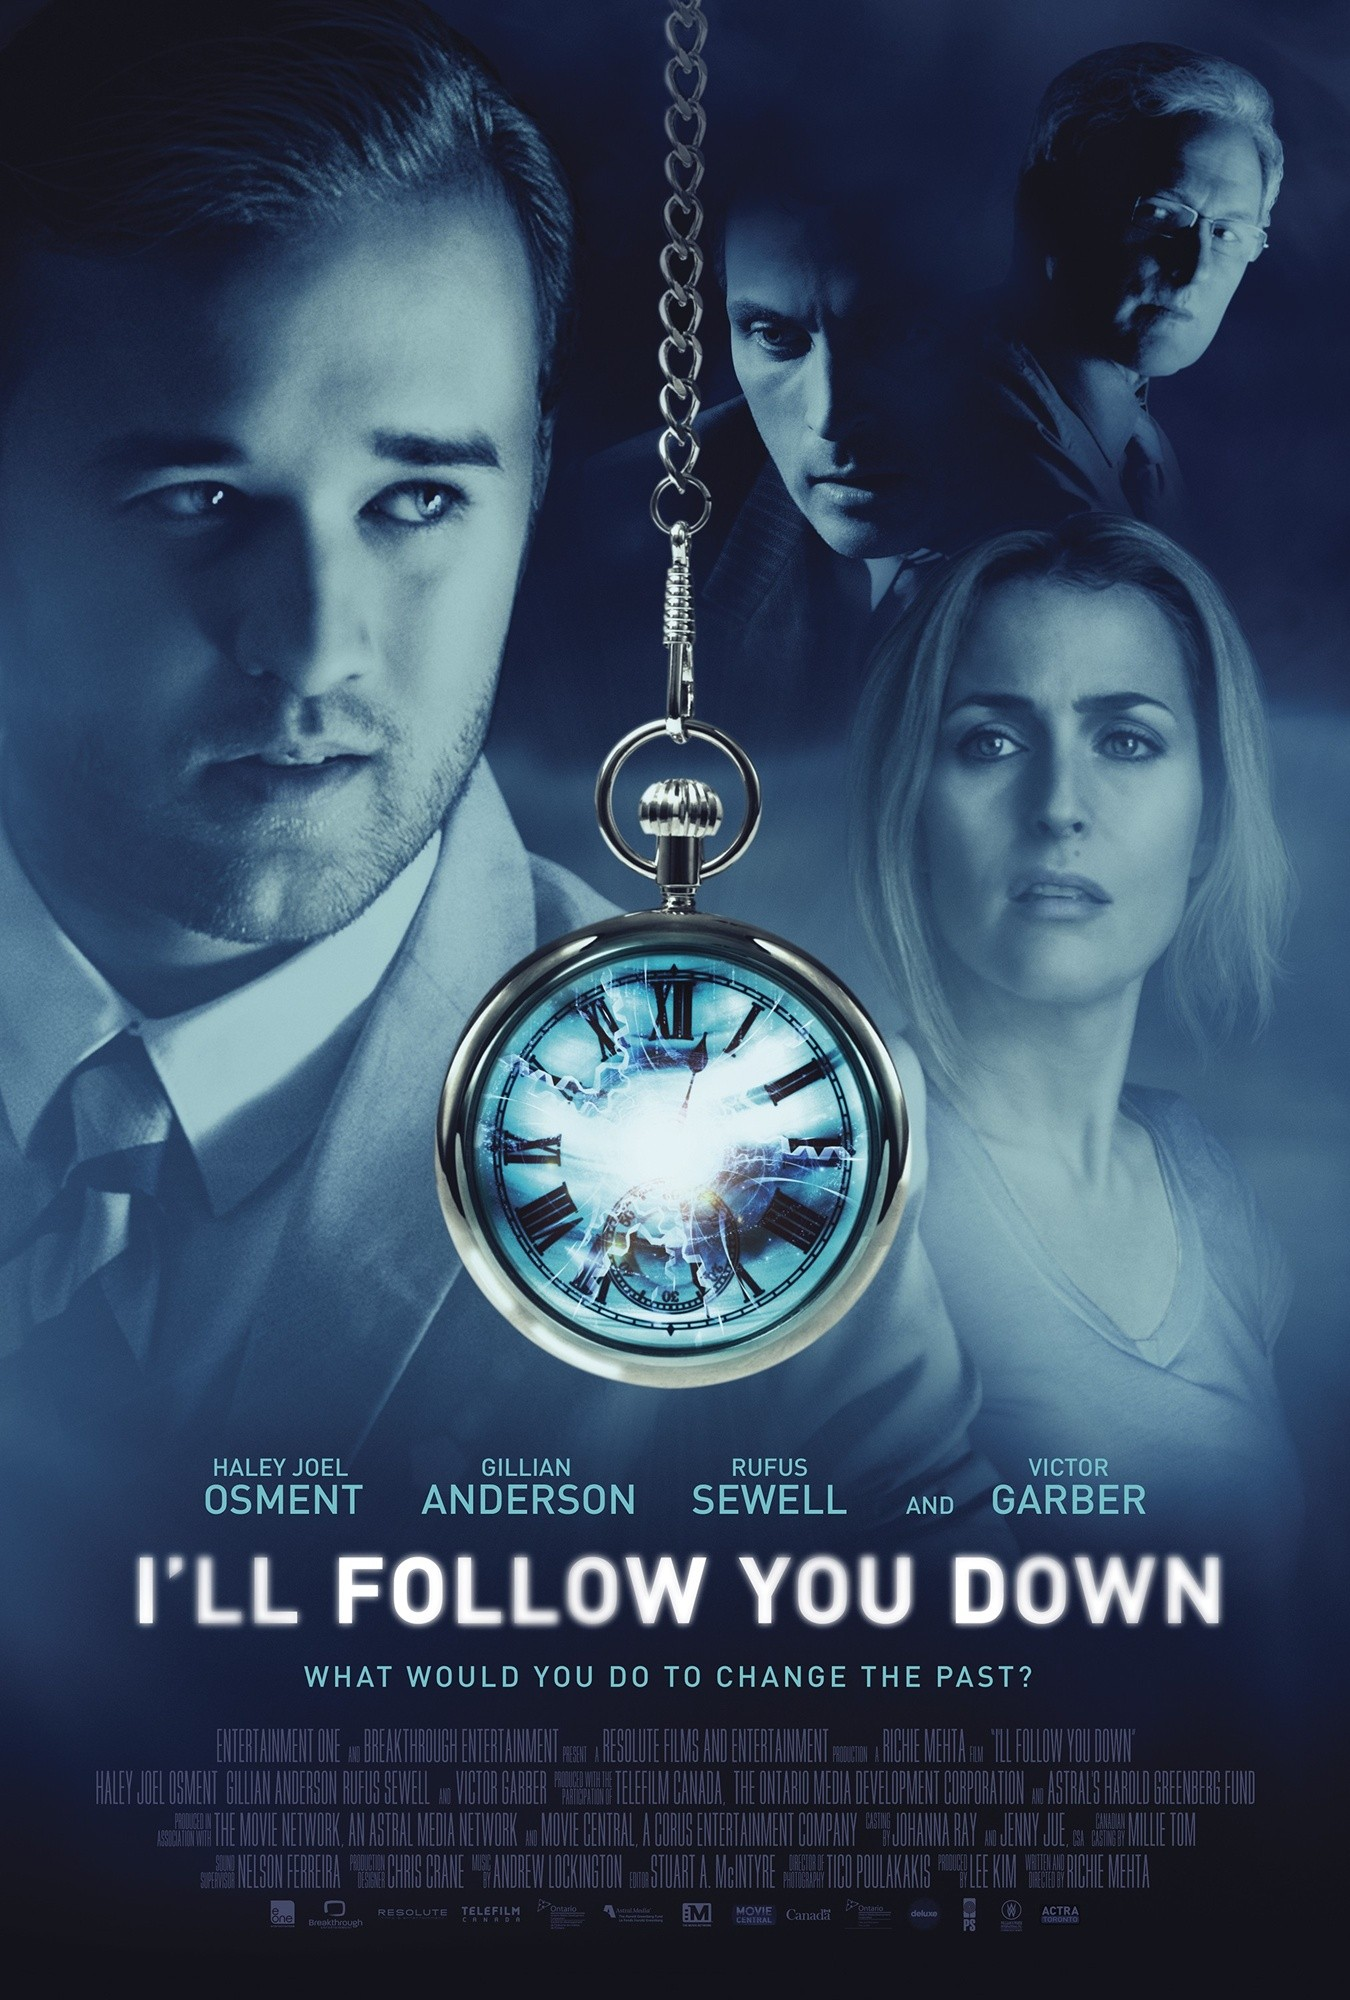 I'll Follow You Down-Official Poster Banner PROMO-22MAIO2014-02